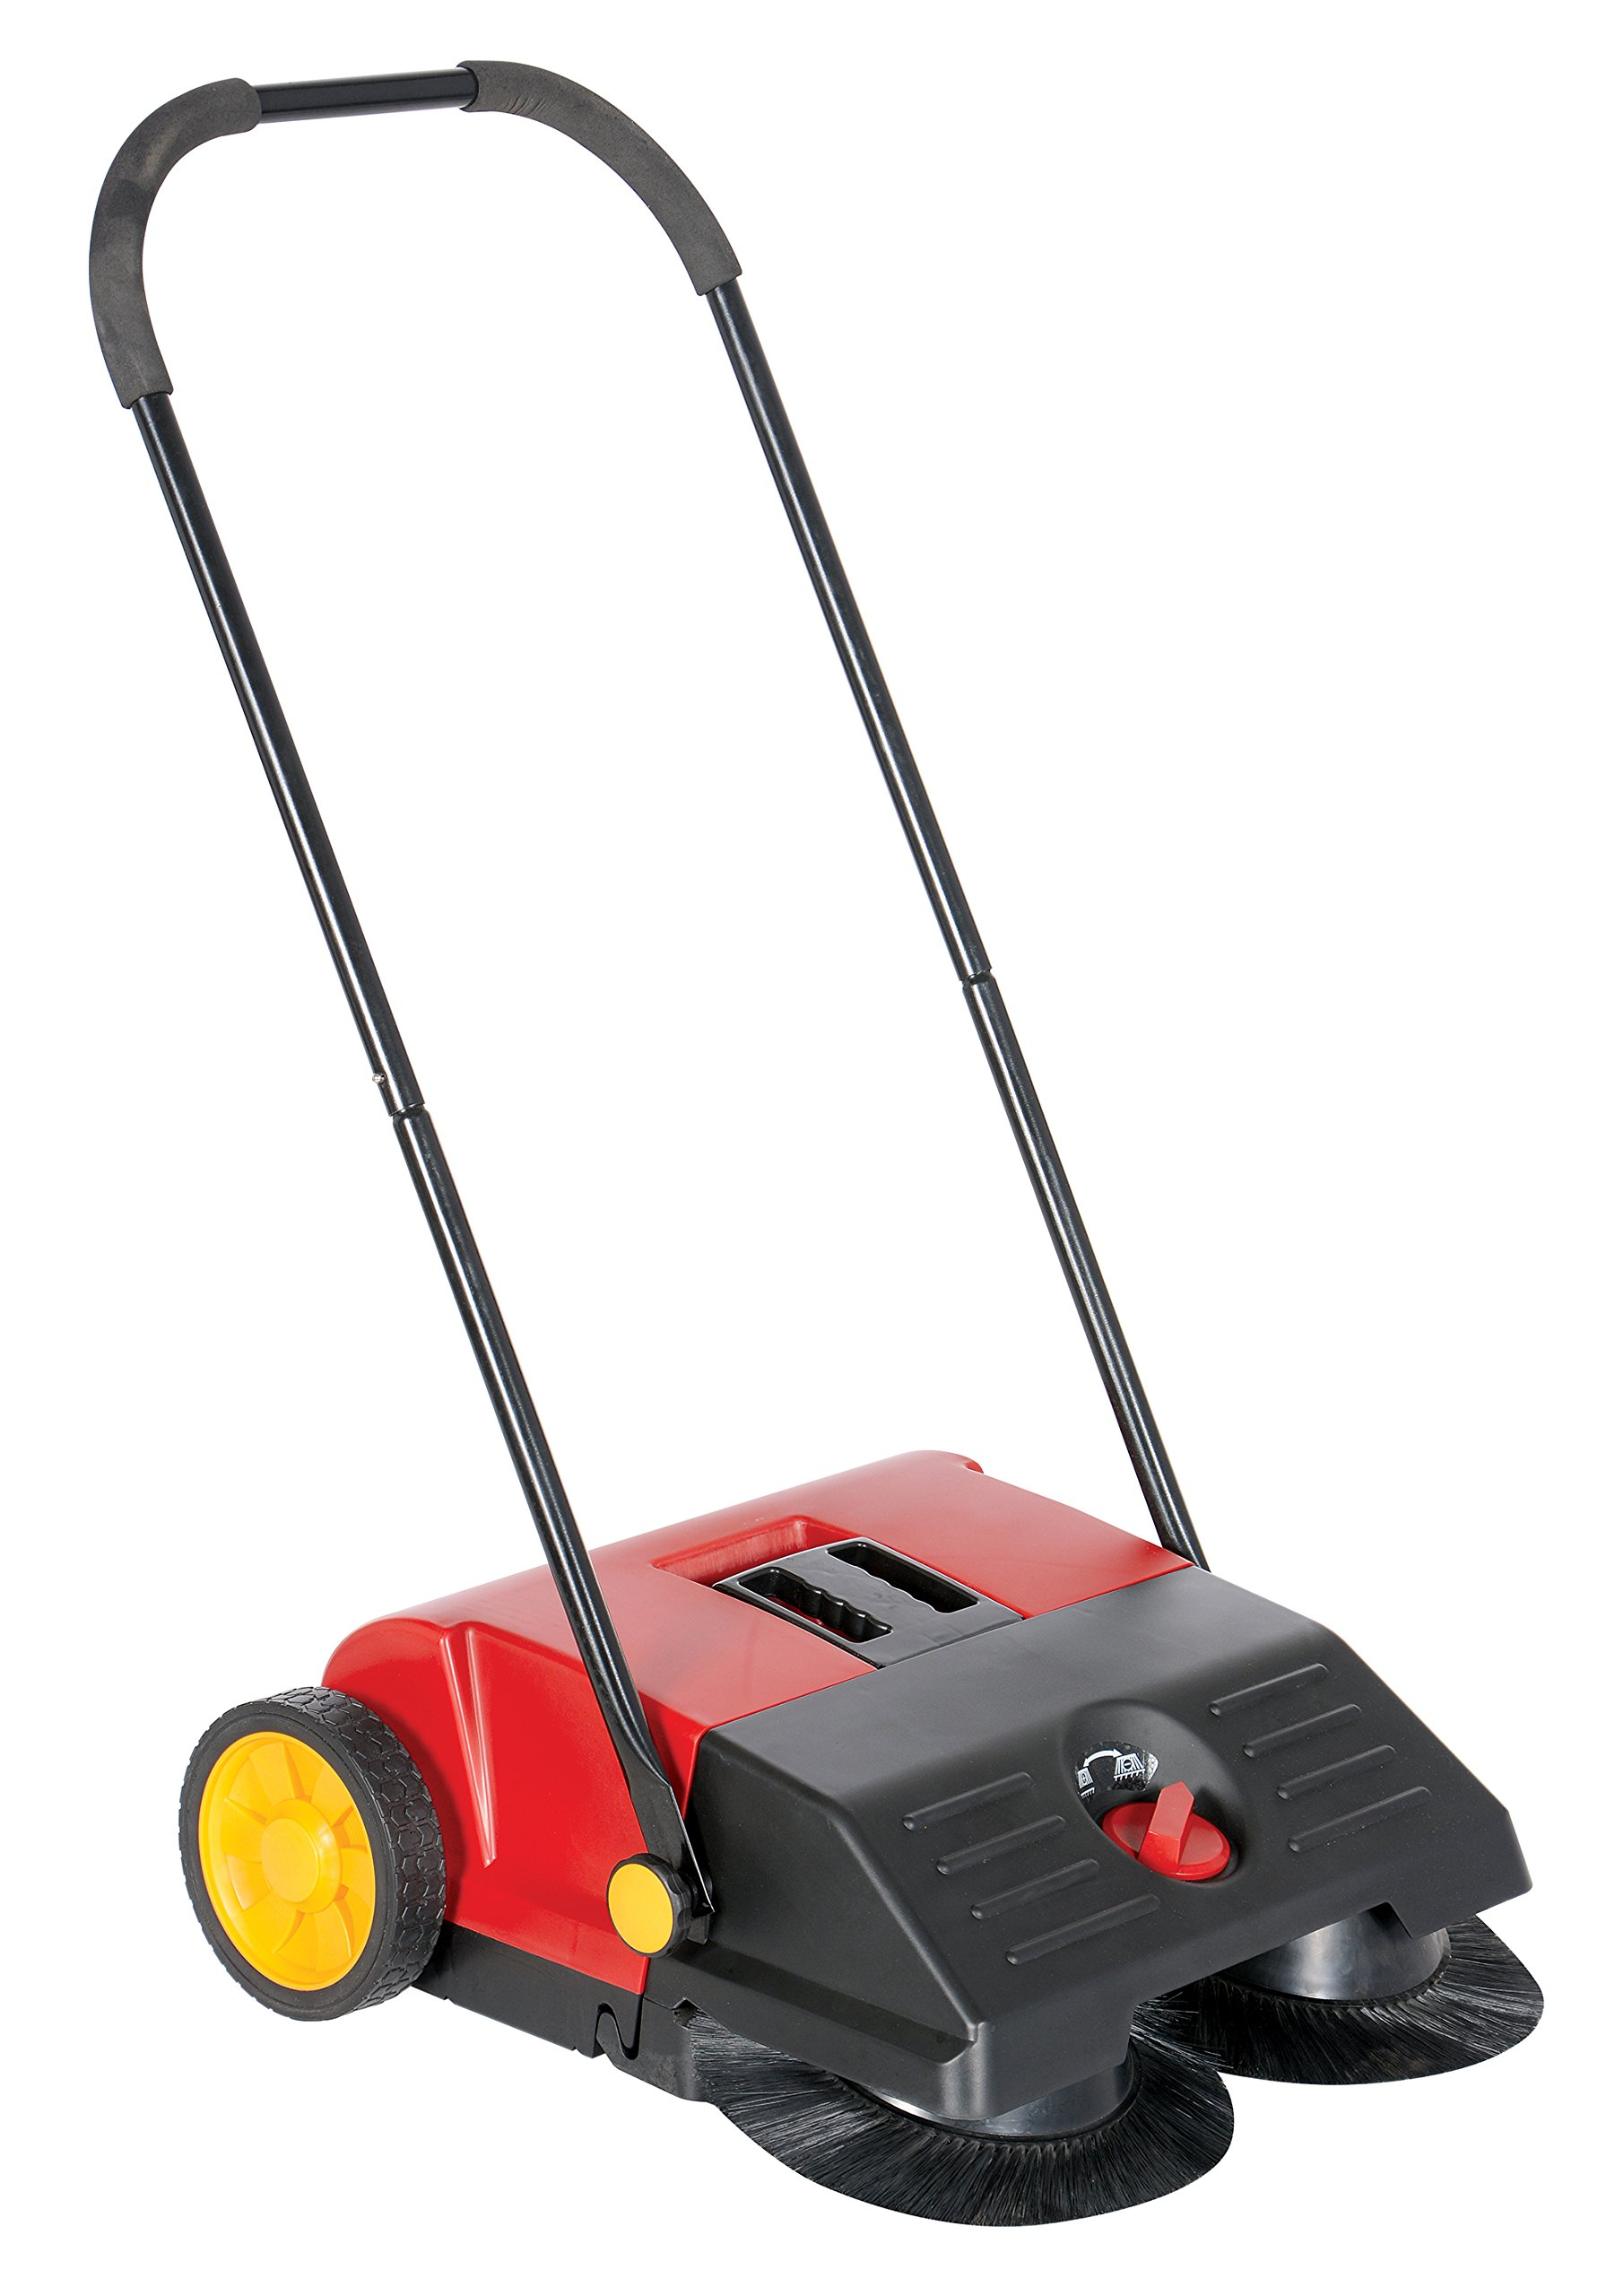 Vestil JAN-SM Manual Push Floor Sweeper with Steel Handle, 21-1/4'' Head Width, 24'' Overall Length, Black and Red